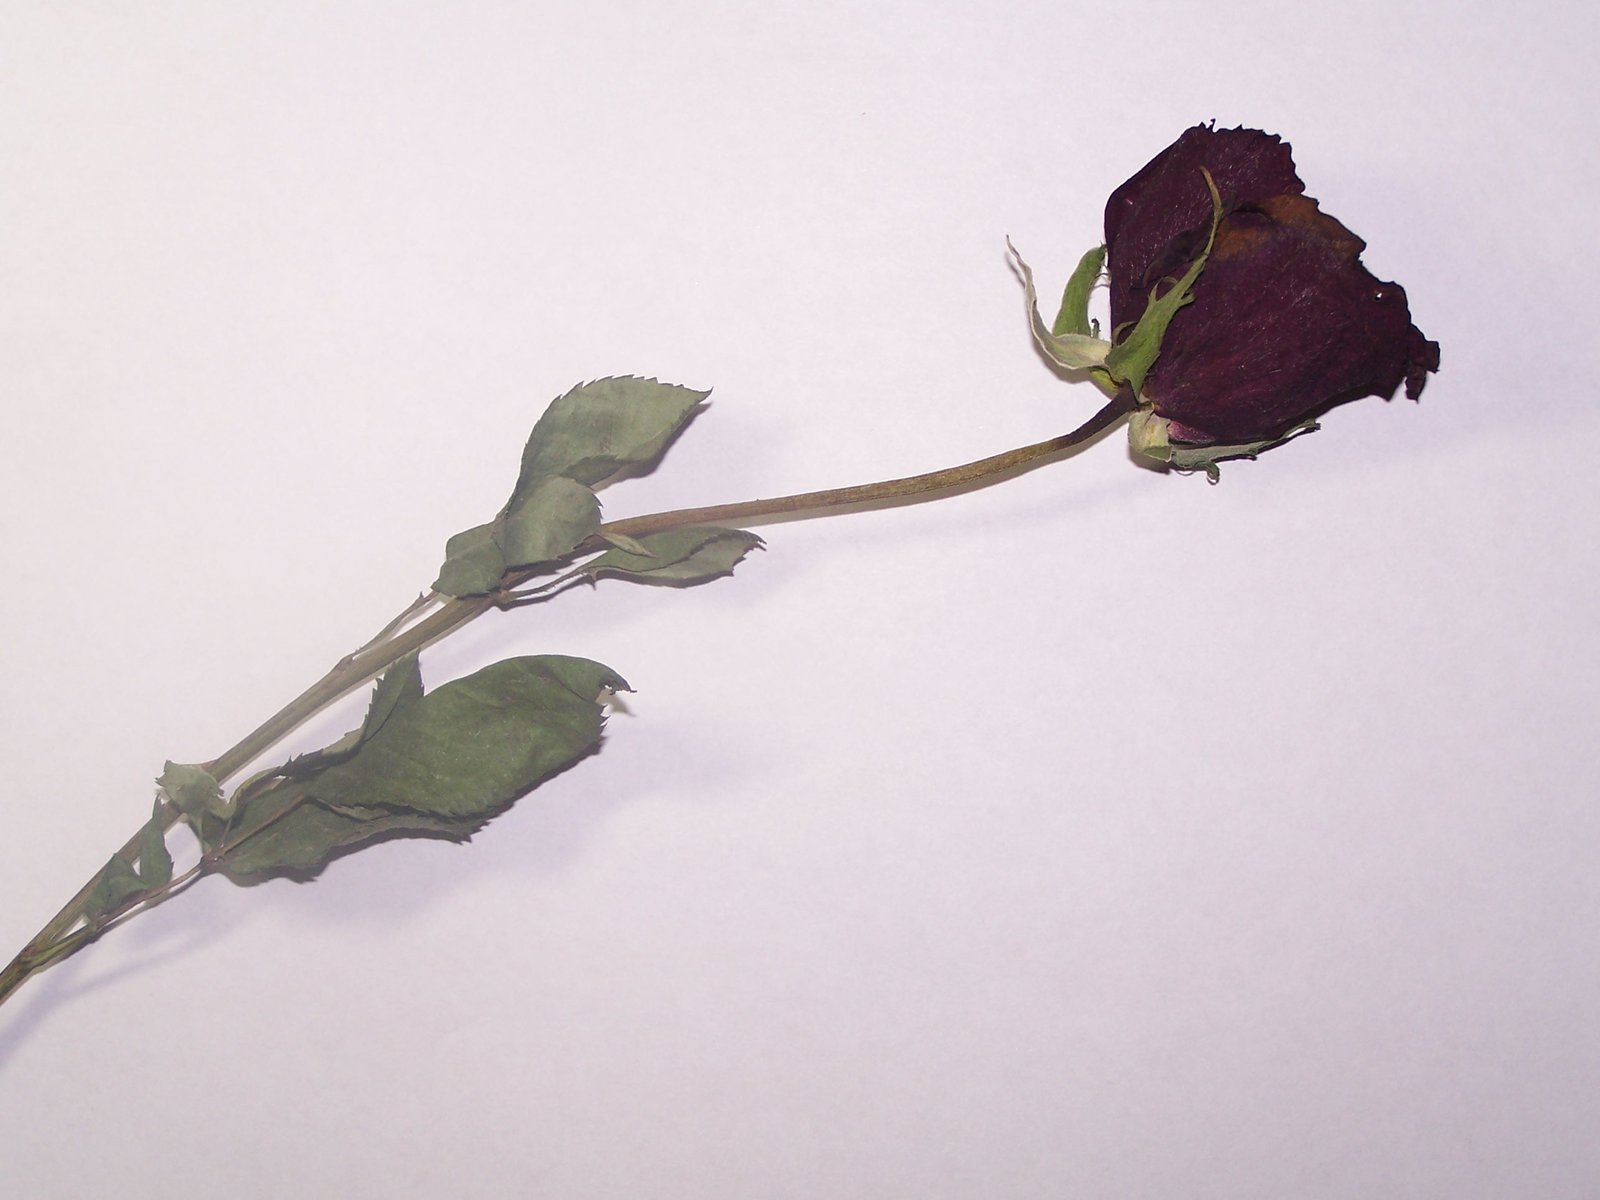 Withered Rose by angel0lynne on DeviantArt